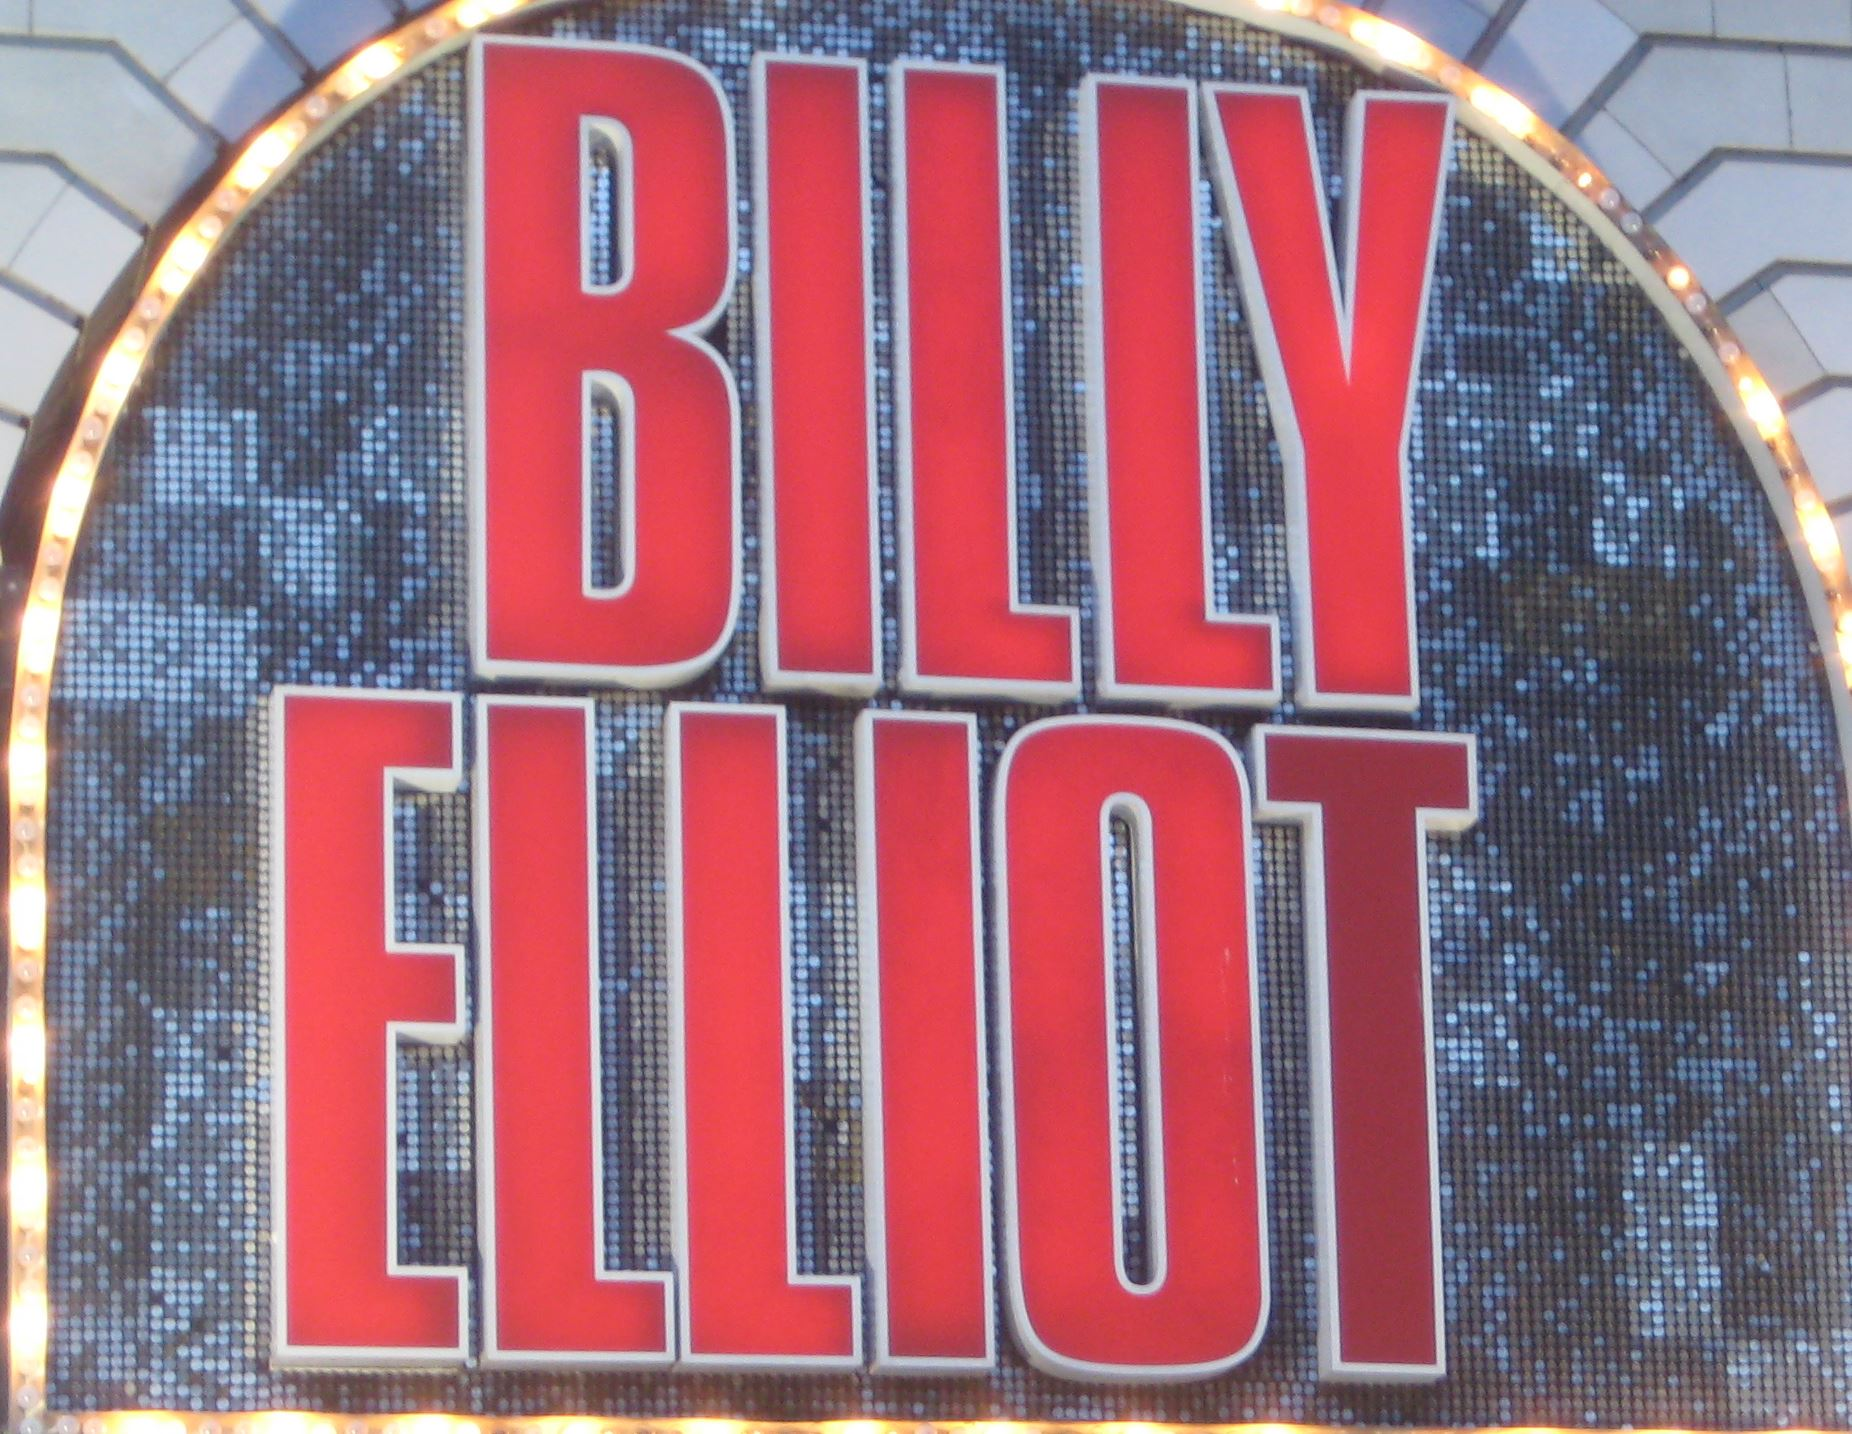 Billy Elliot Victoria Palace Theatre